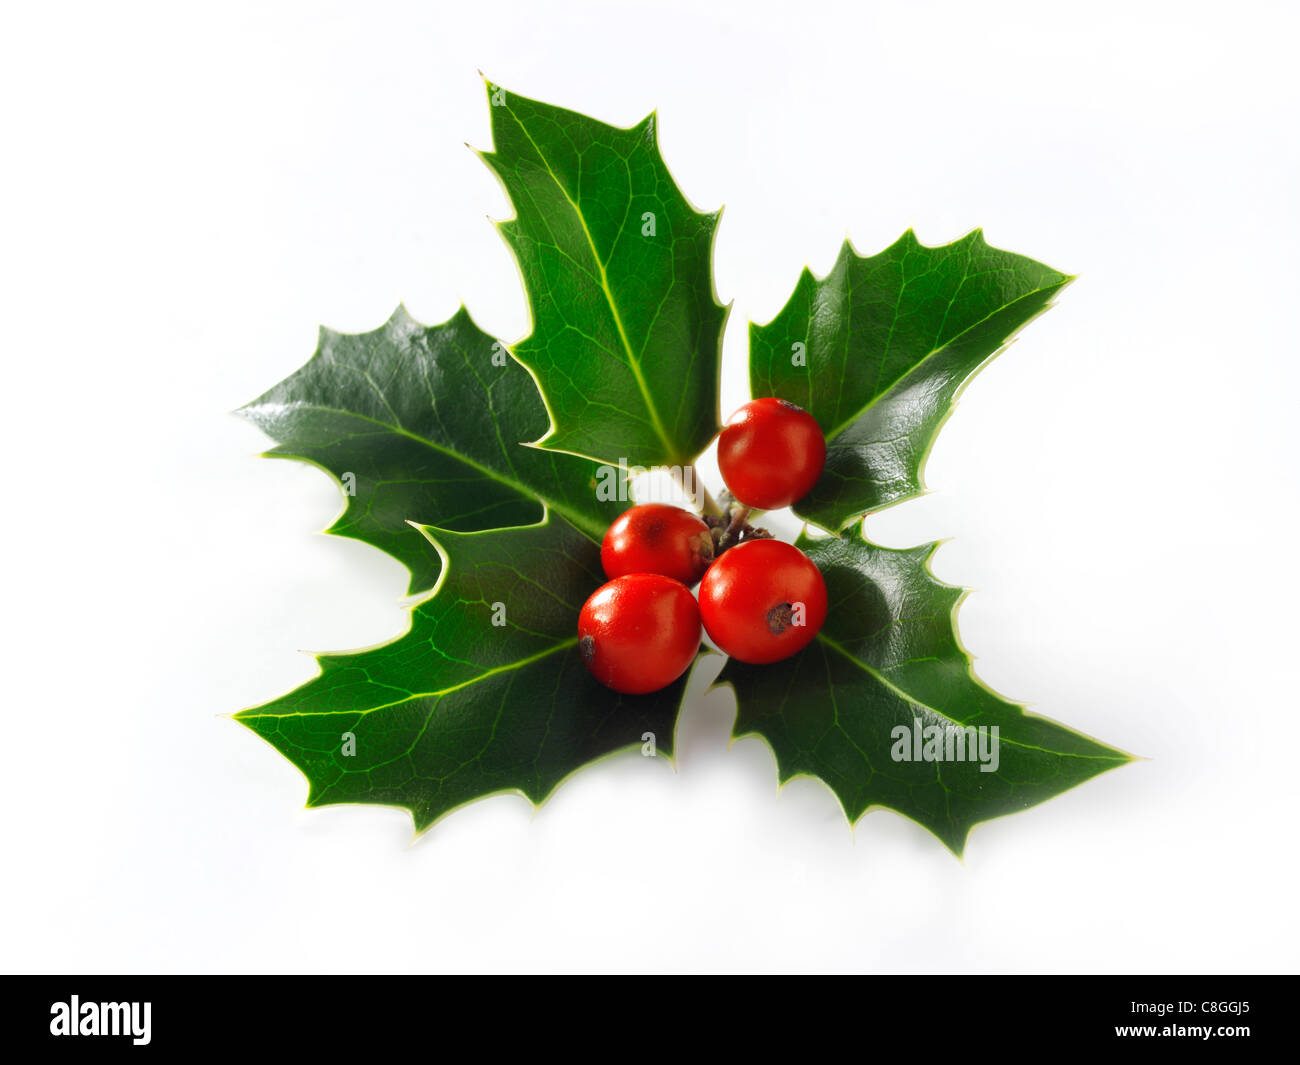 Christmas Holly leaves & berries - Stock Image